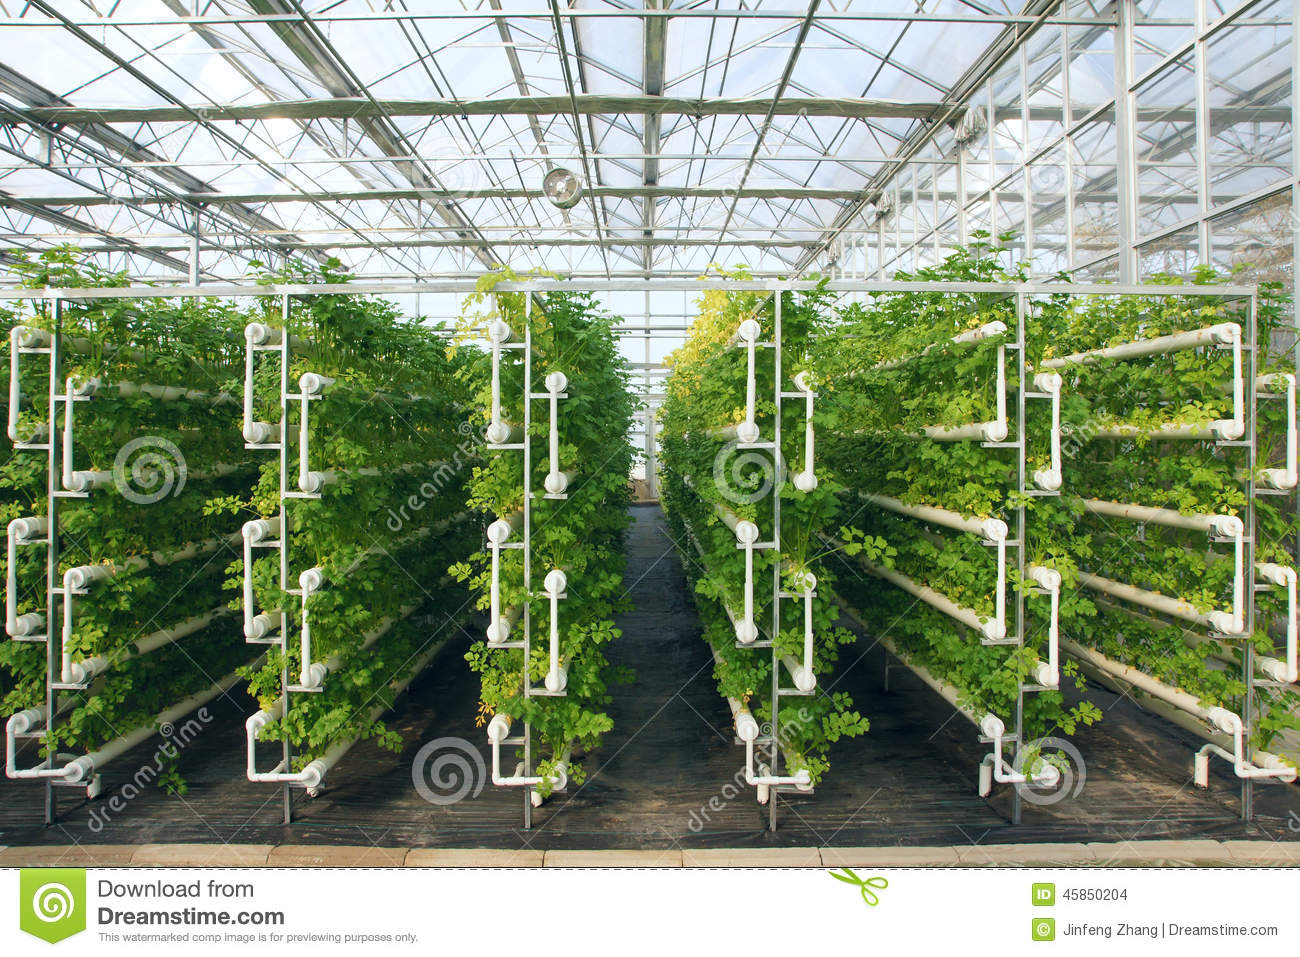 Stock Photo Greenhouse Hydroponic Celeries Growing Hothouse Image45850204 on Greenhouse Interior Design Ideas